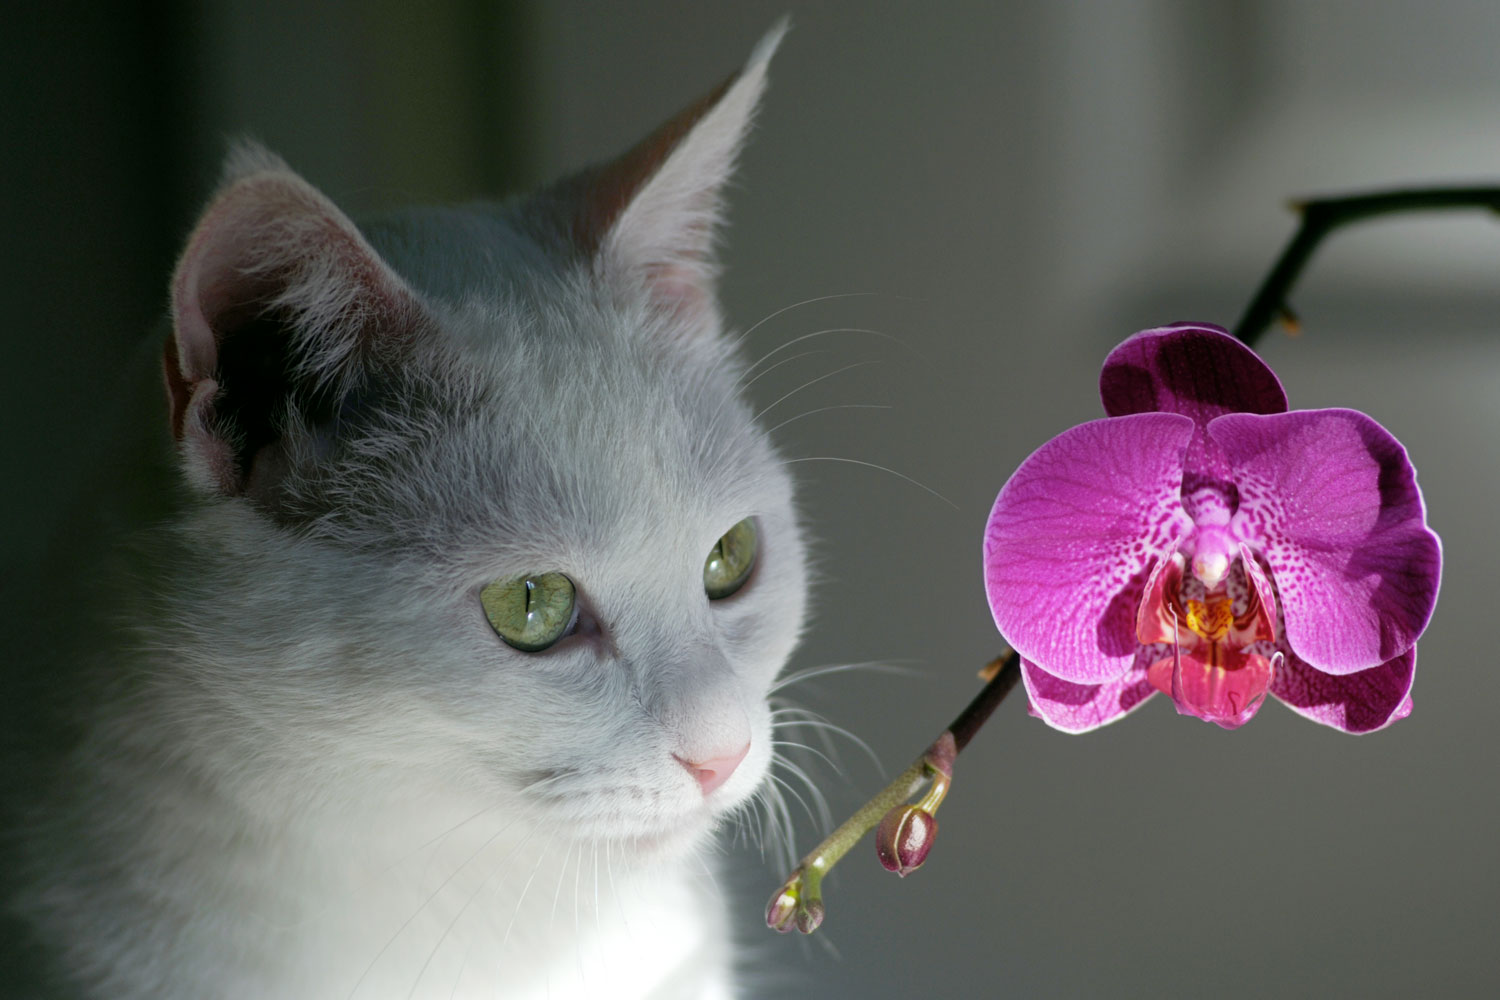 A cat smelling staring and smelling an orchid plant